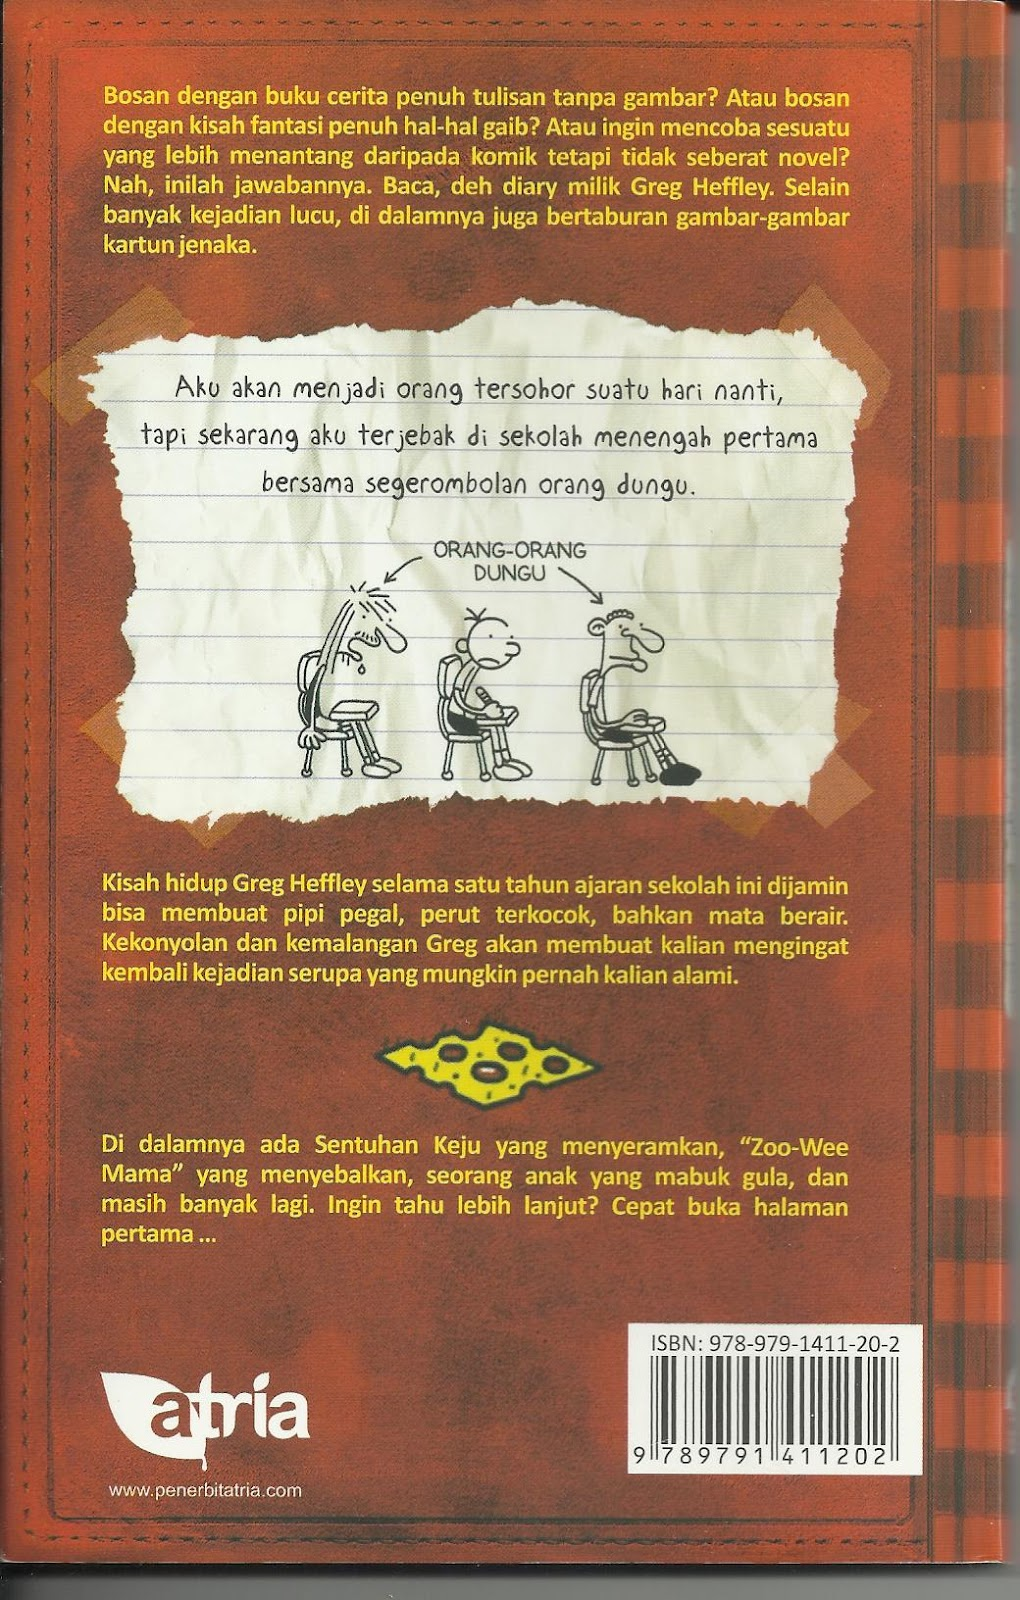 Diary Of An Interior Novice: The Journey (My Life' Journal): Diary Of A Wimpy Kid